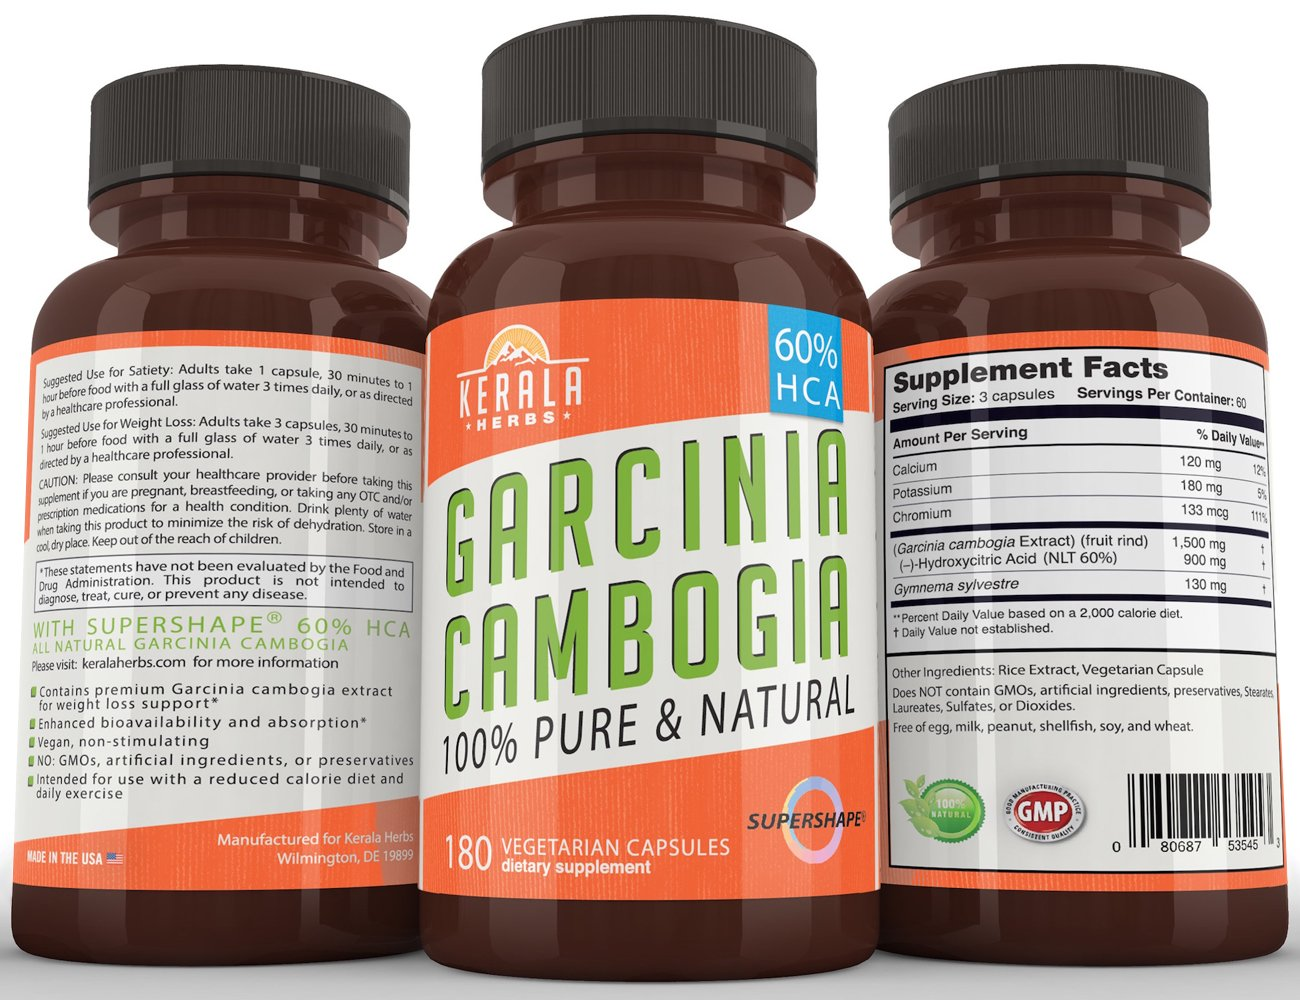 Garcinia Cambogia 100% Pure Extra Strength Extract with 60% HCA, 180 Capsules, All Natural Appetite Suppressant, Fat Burner, Carb Blocker, Weight Loss Diet Supplement that Works for Women and Men by Kerala Herbs